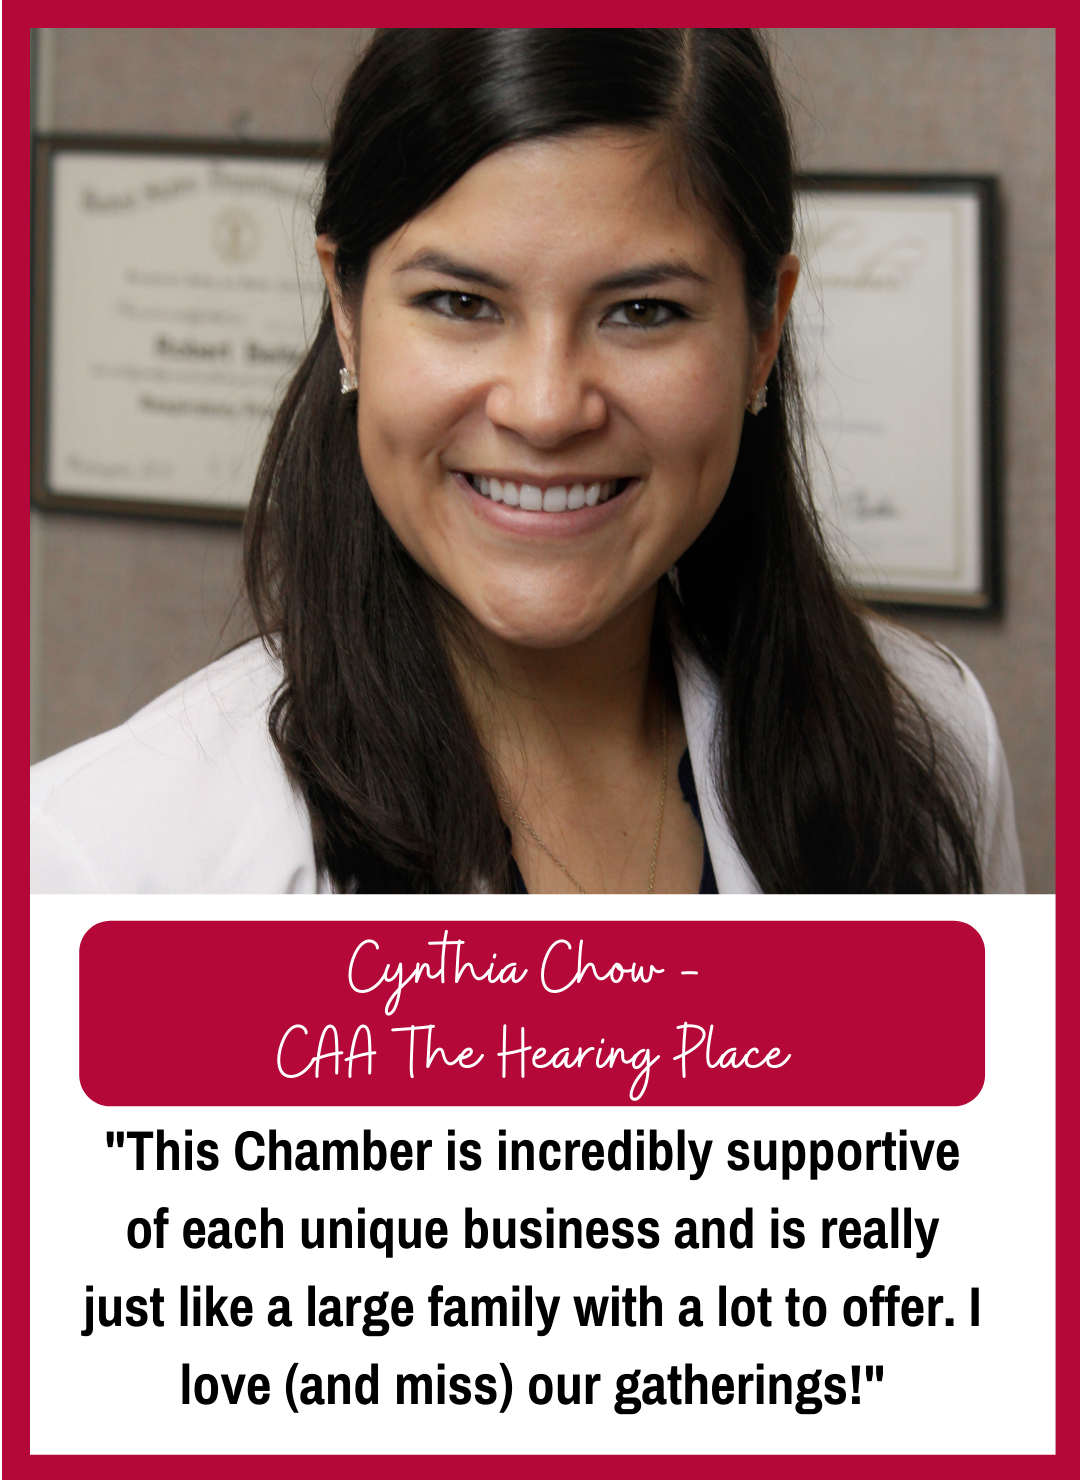 Dr. Cynthia Chow - CAA The Hearing Place